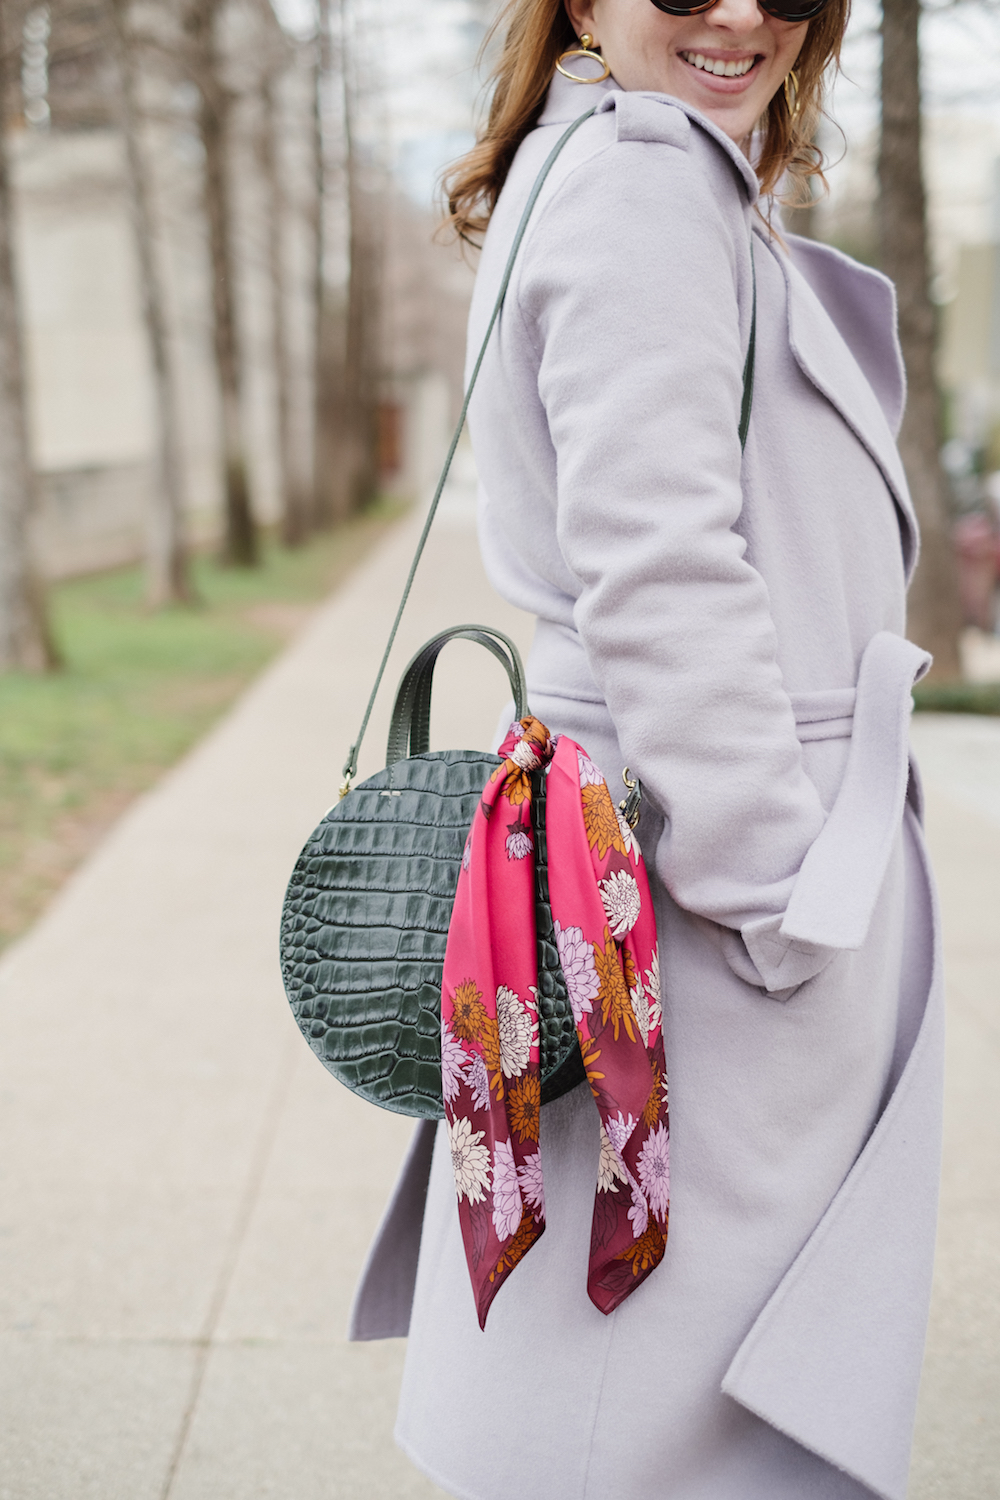 How to Wear a Silk Scarf | How to Add Color to Your Winter Wardrobe | How to Add Color to Your Outfit